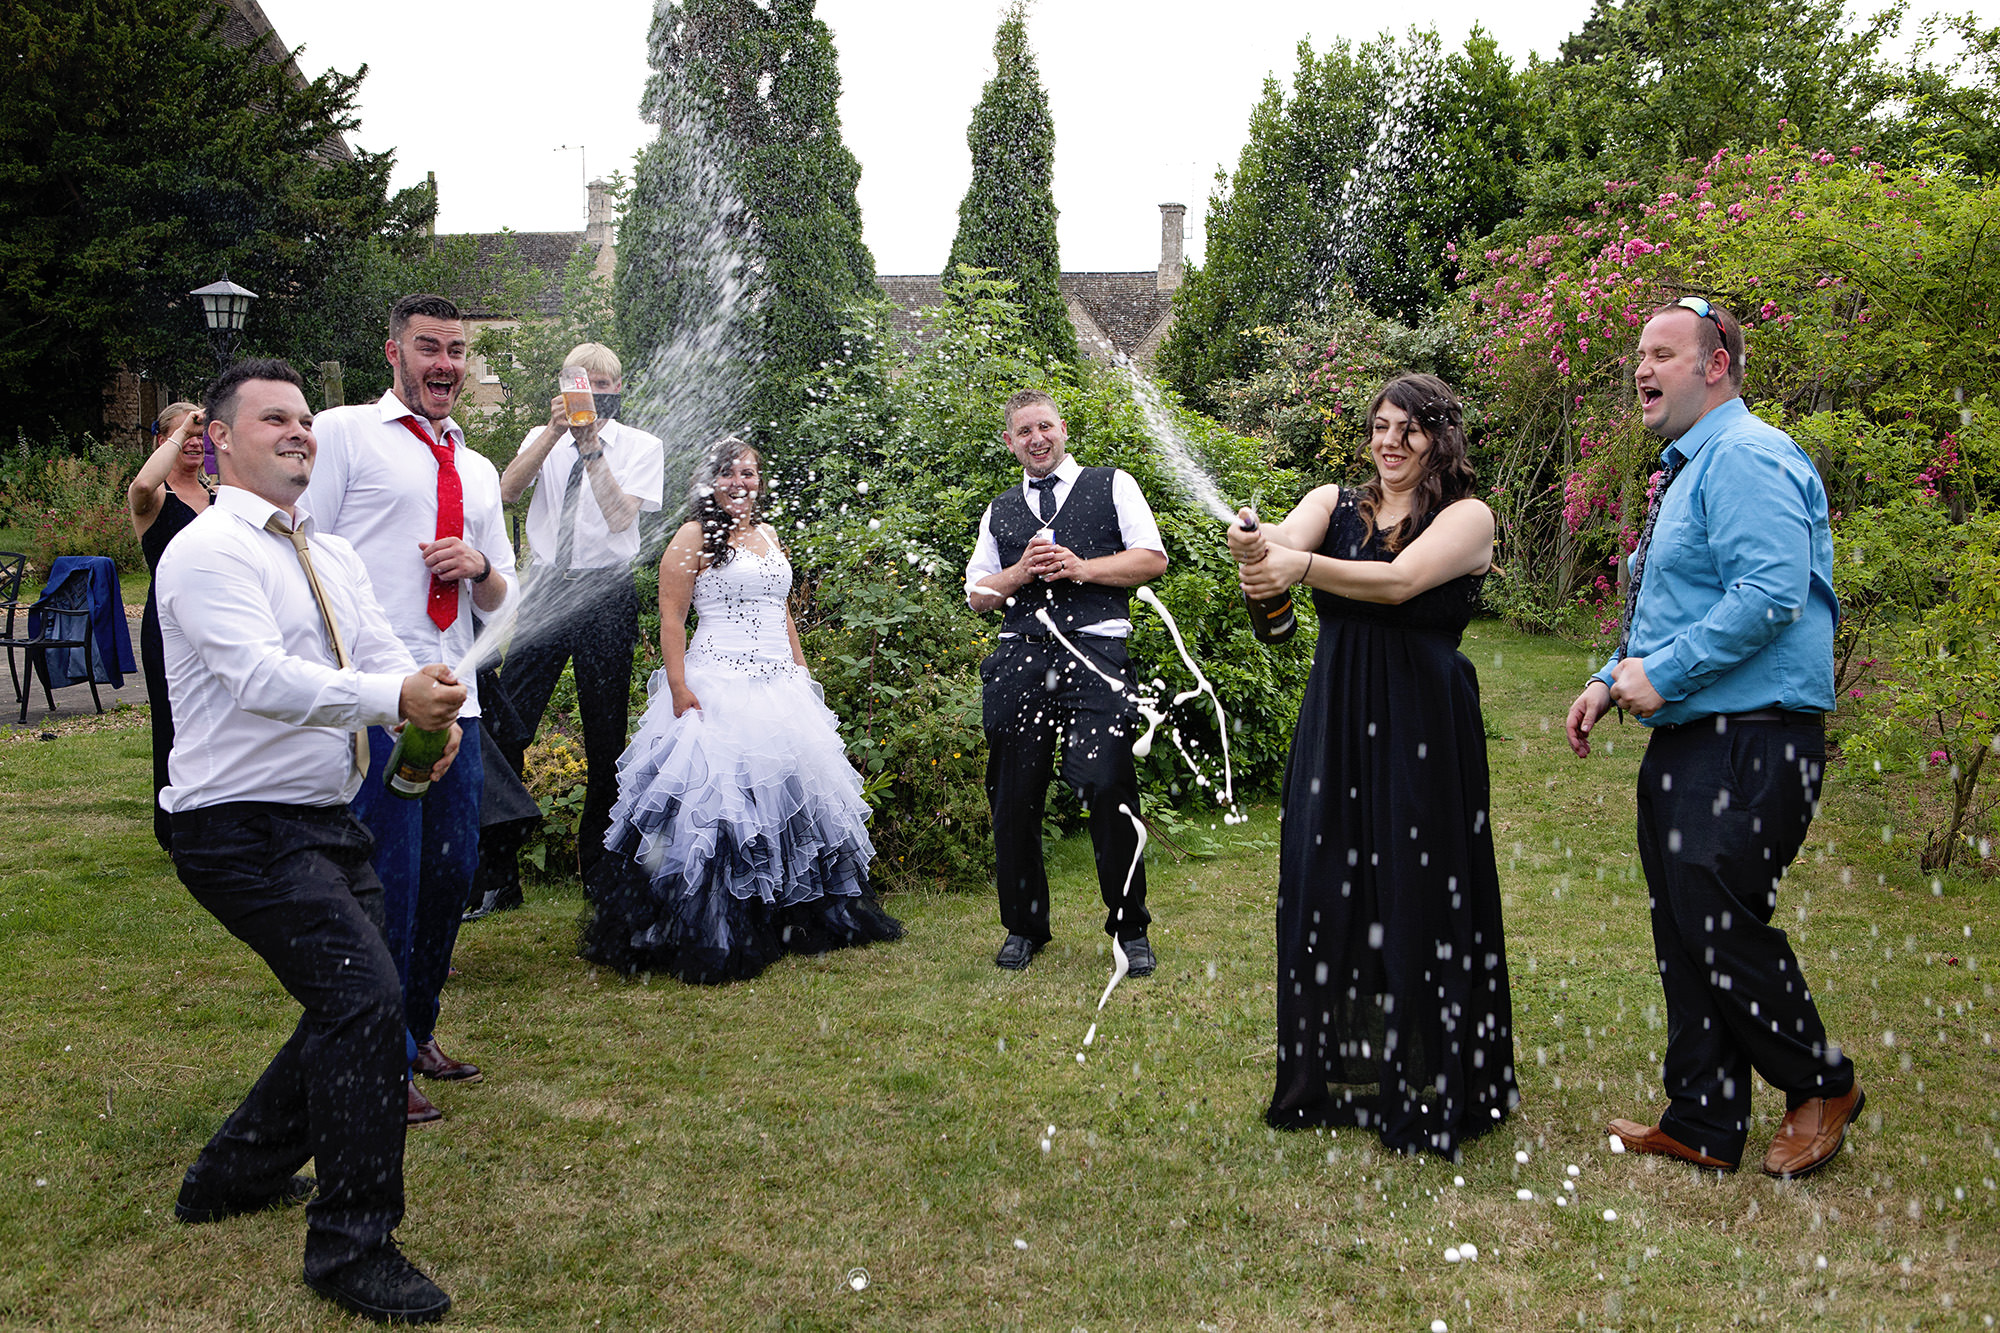 I bring two bottles to every wedding… - To jazz up the group photographs I have more tricks than a tap dancing weasel!